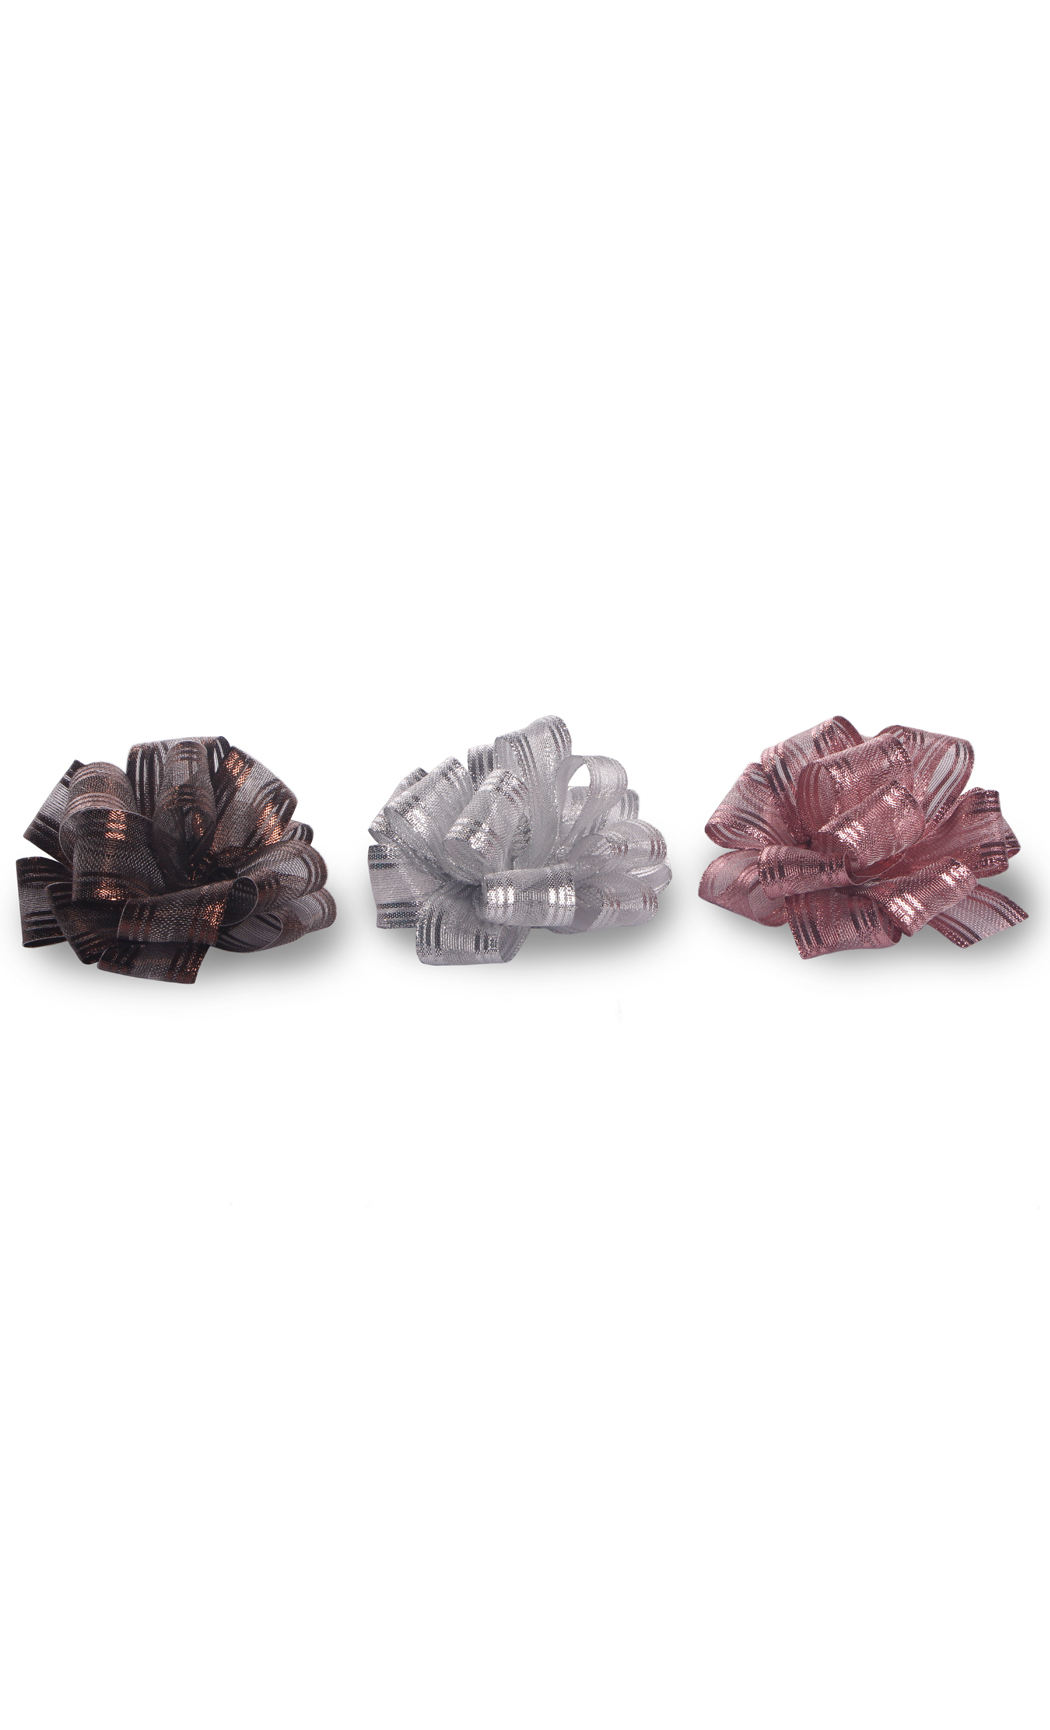 Ready to Stick Metalic Bows (Set of 3) - Buy Online